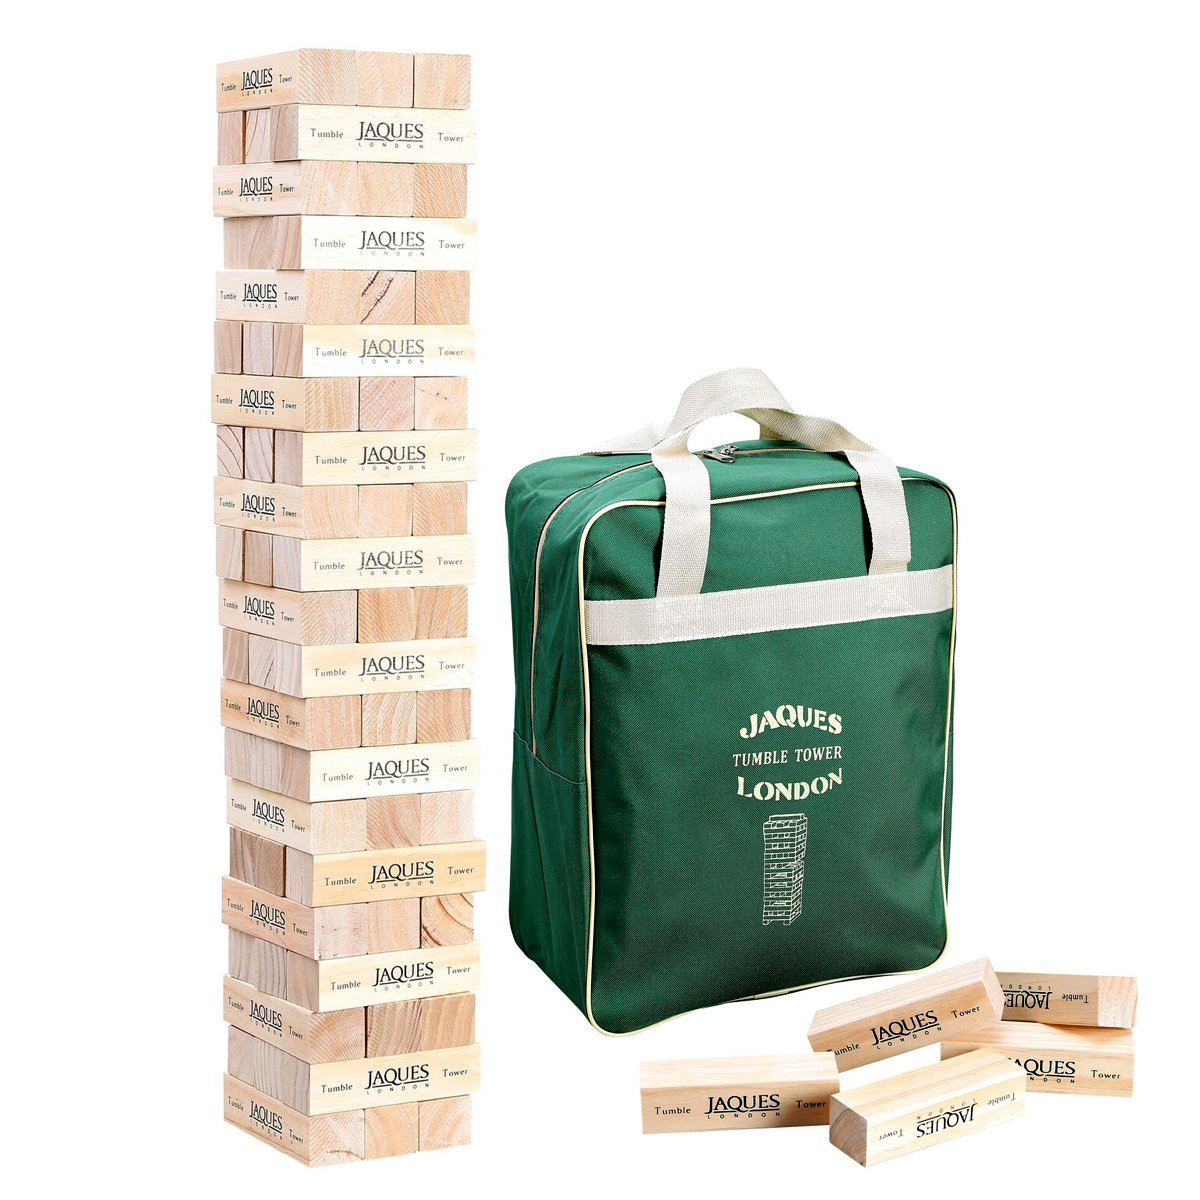 Jaques of London Giant Tumble Tower - Builds Over 3ft Tall During Outdoor Garden Play - Handmade Garden games by Trusted Since 1795 20520